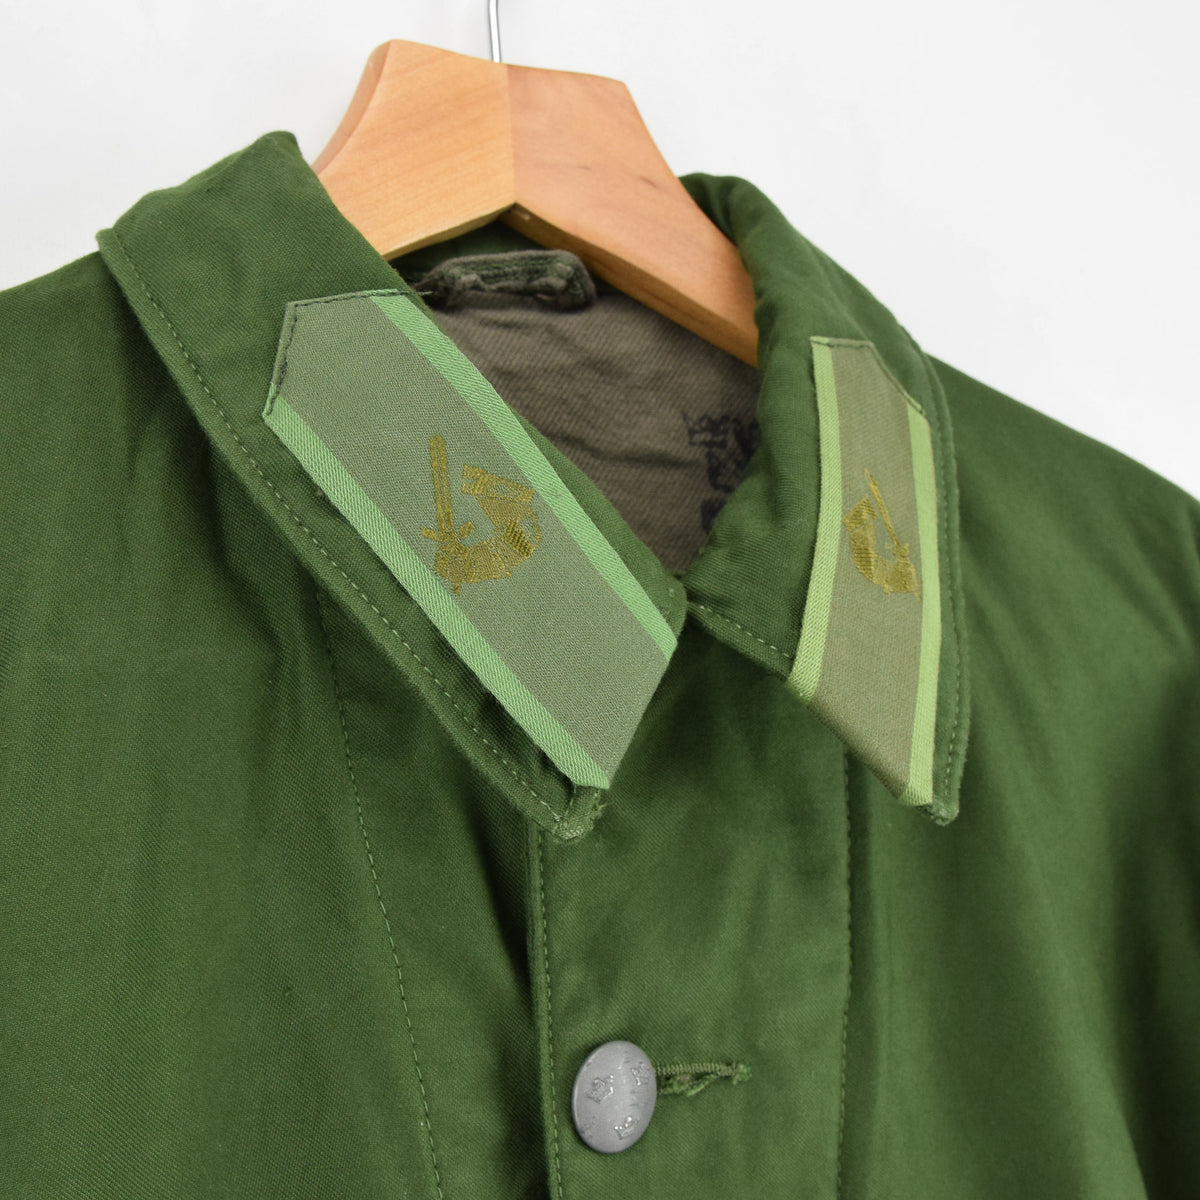 Vintage 60s Swedish M59 Field Military Olive Green Worker Style Jacket S collar